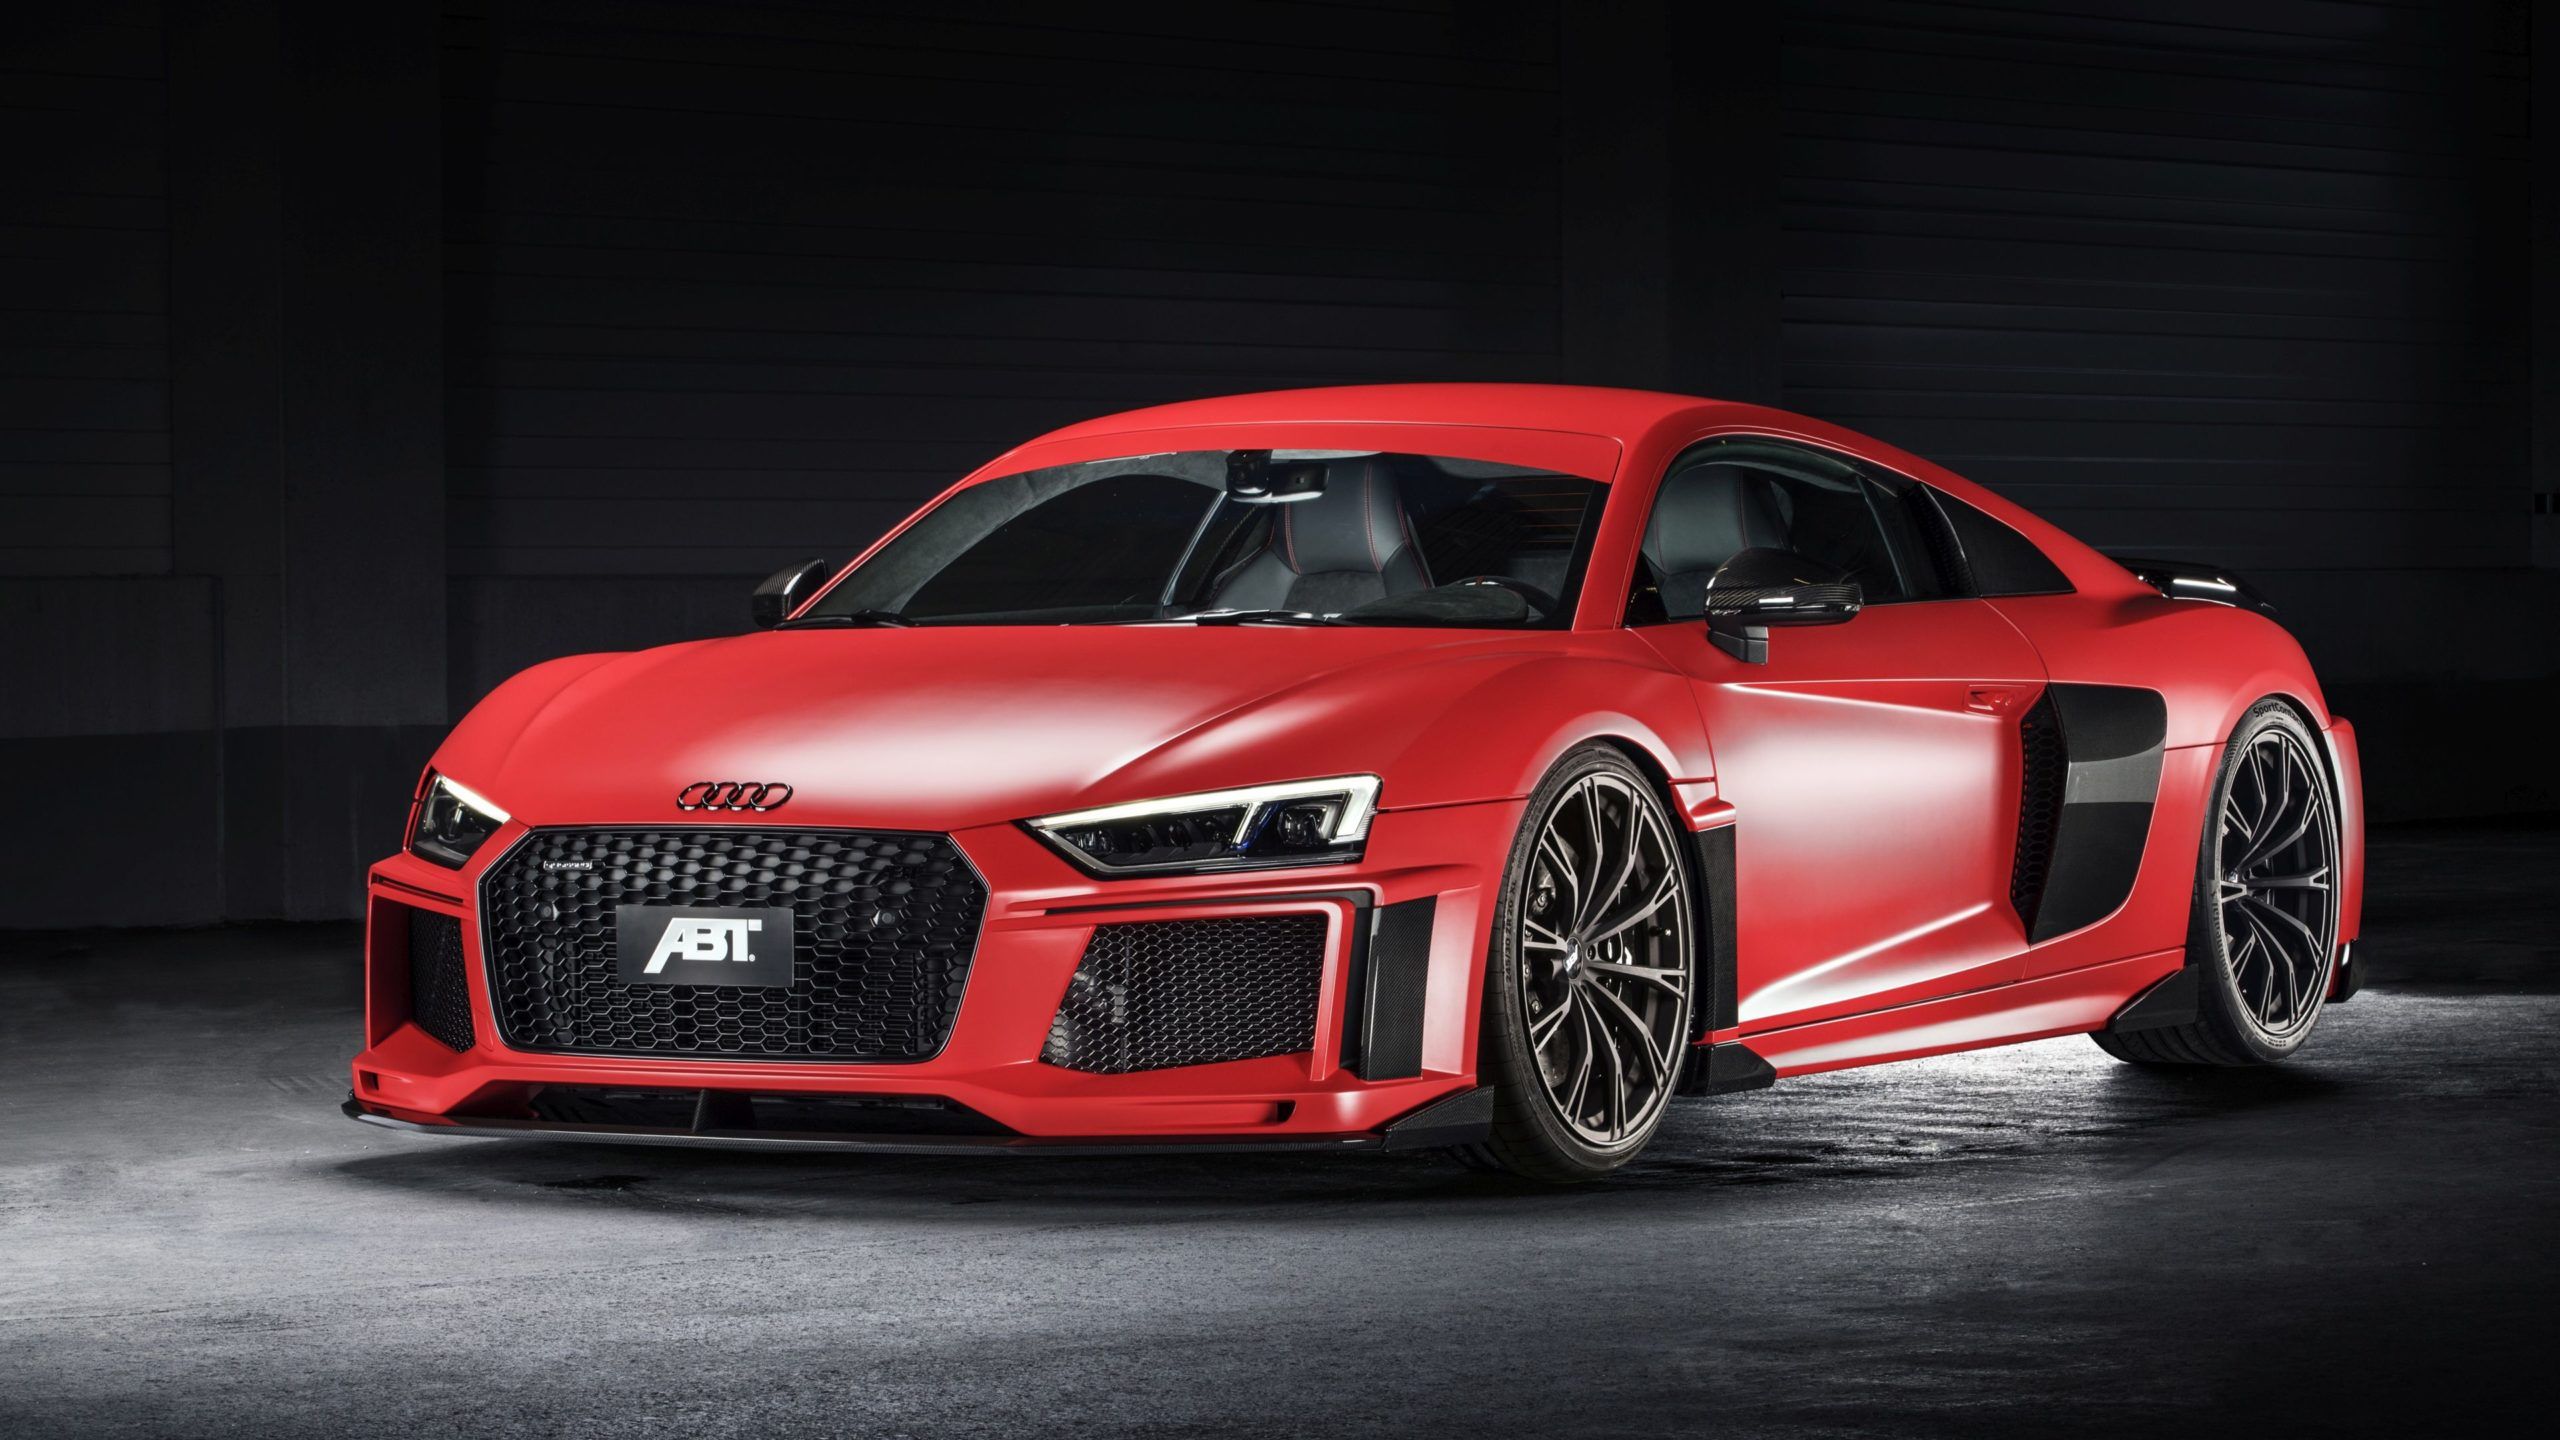 audi car hd images